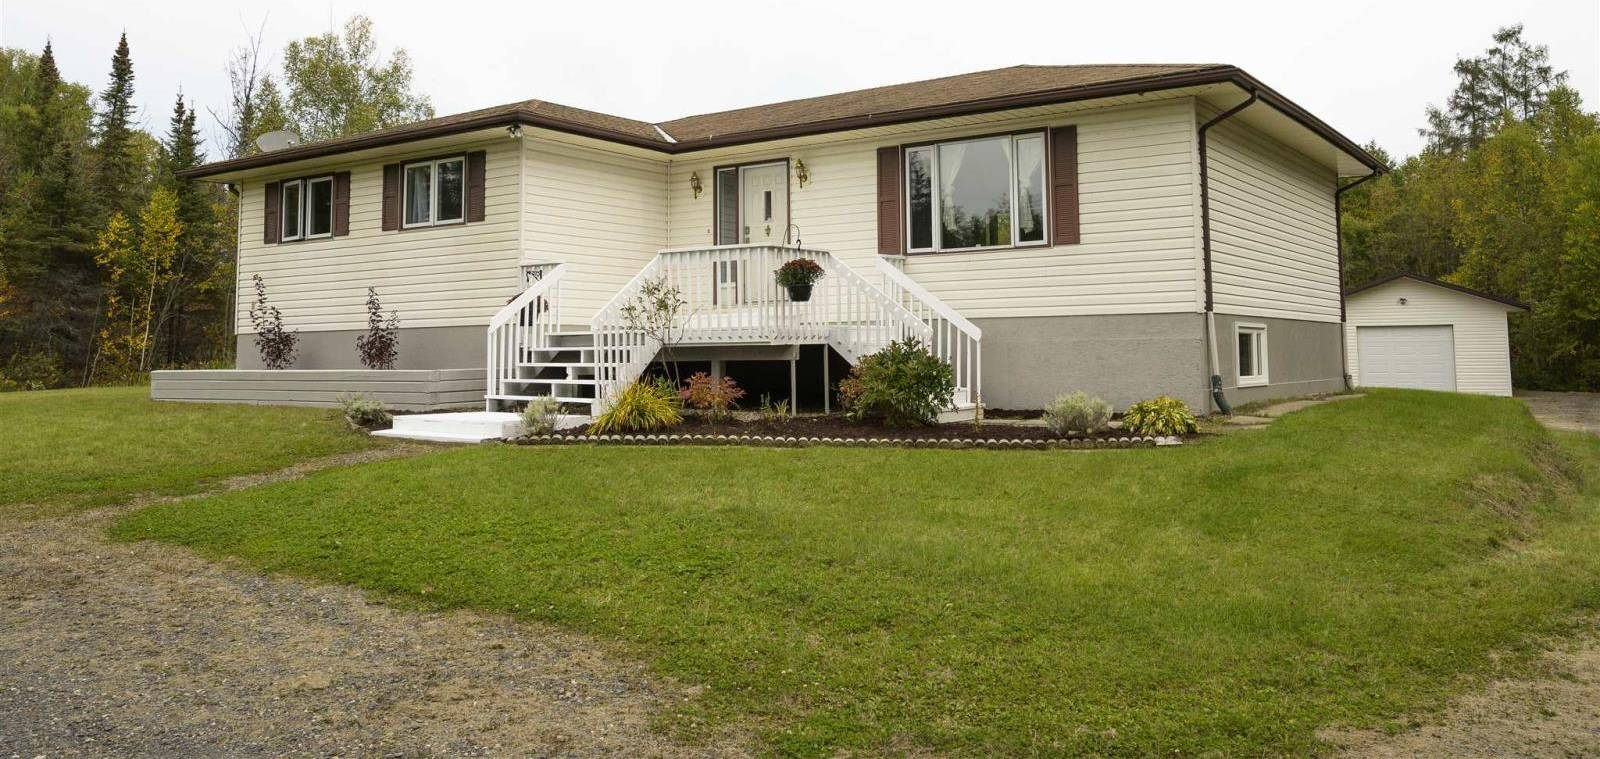 House for sale at 5924 Townline Rd Thunder Bay Ontario - MLS: TB193135